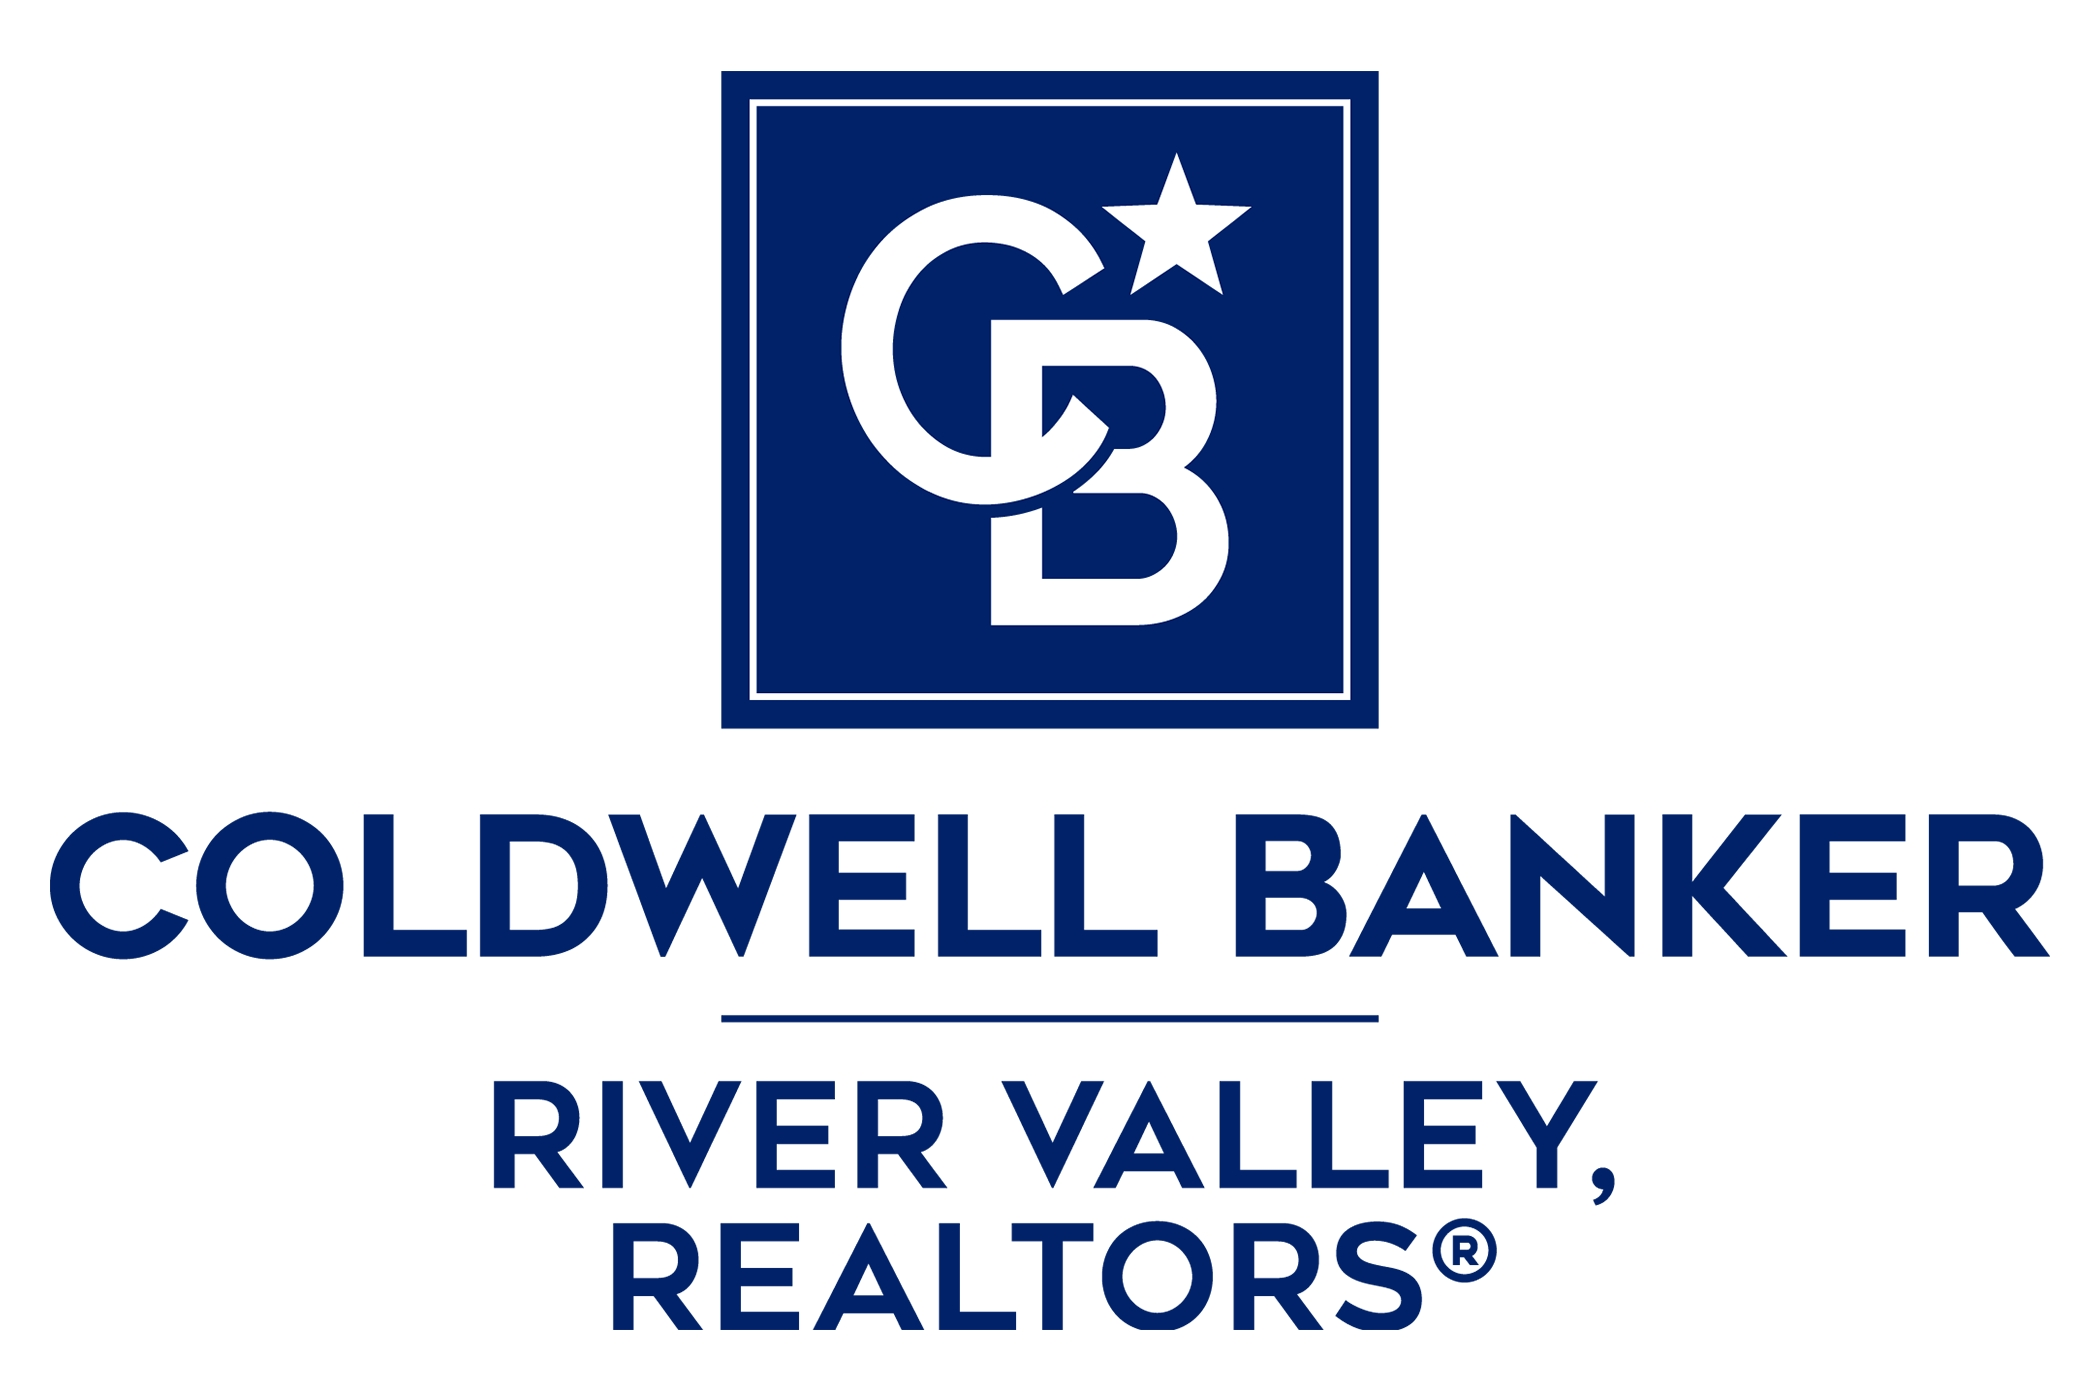 Catherine Fox - Coldwell Banker River Valley, REALTORS